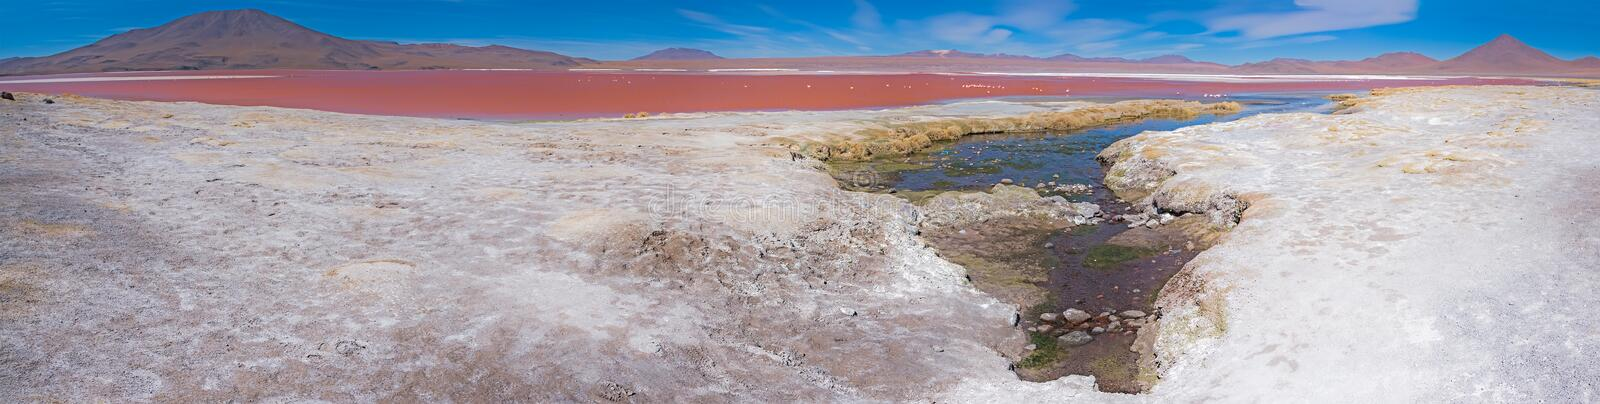 Panorama Laguna Colorada zdjęcia royalty free